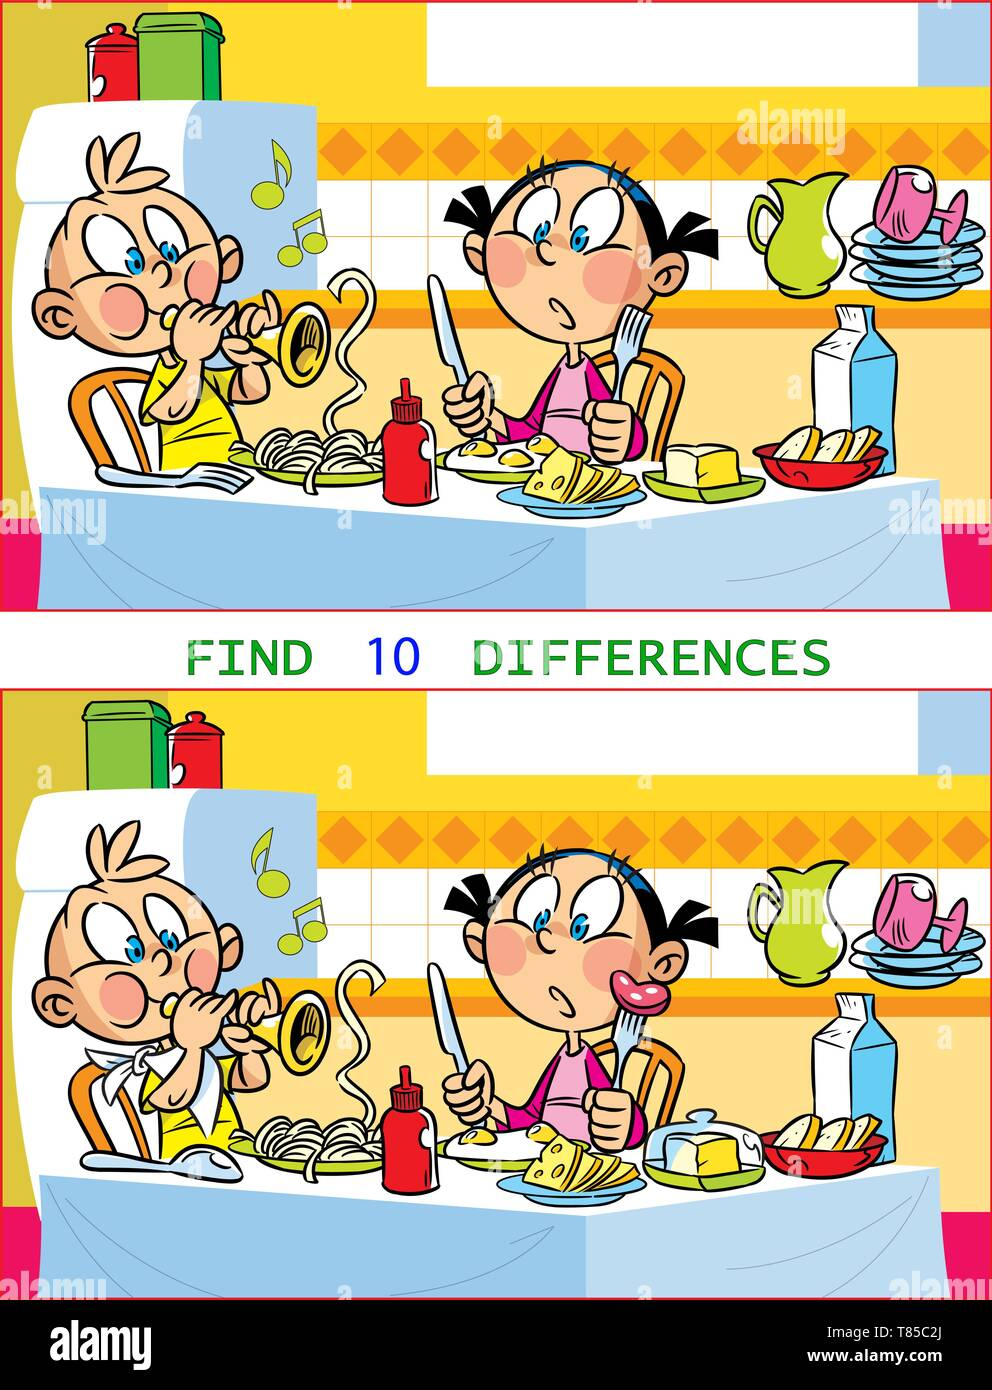 In vector illustration puzzle with children who play at the kitchen table. The task is to find ten differences between the images. - Stock Vector